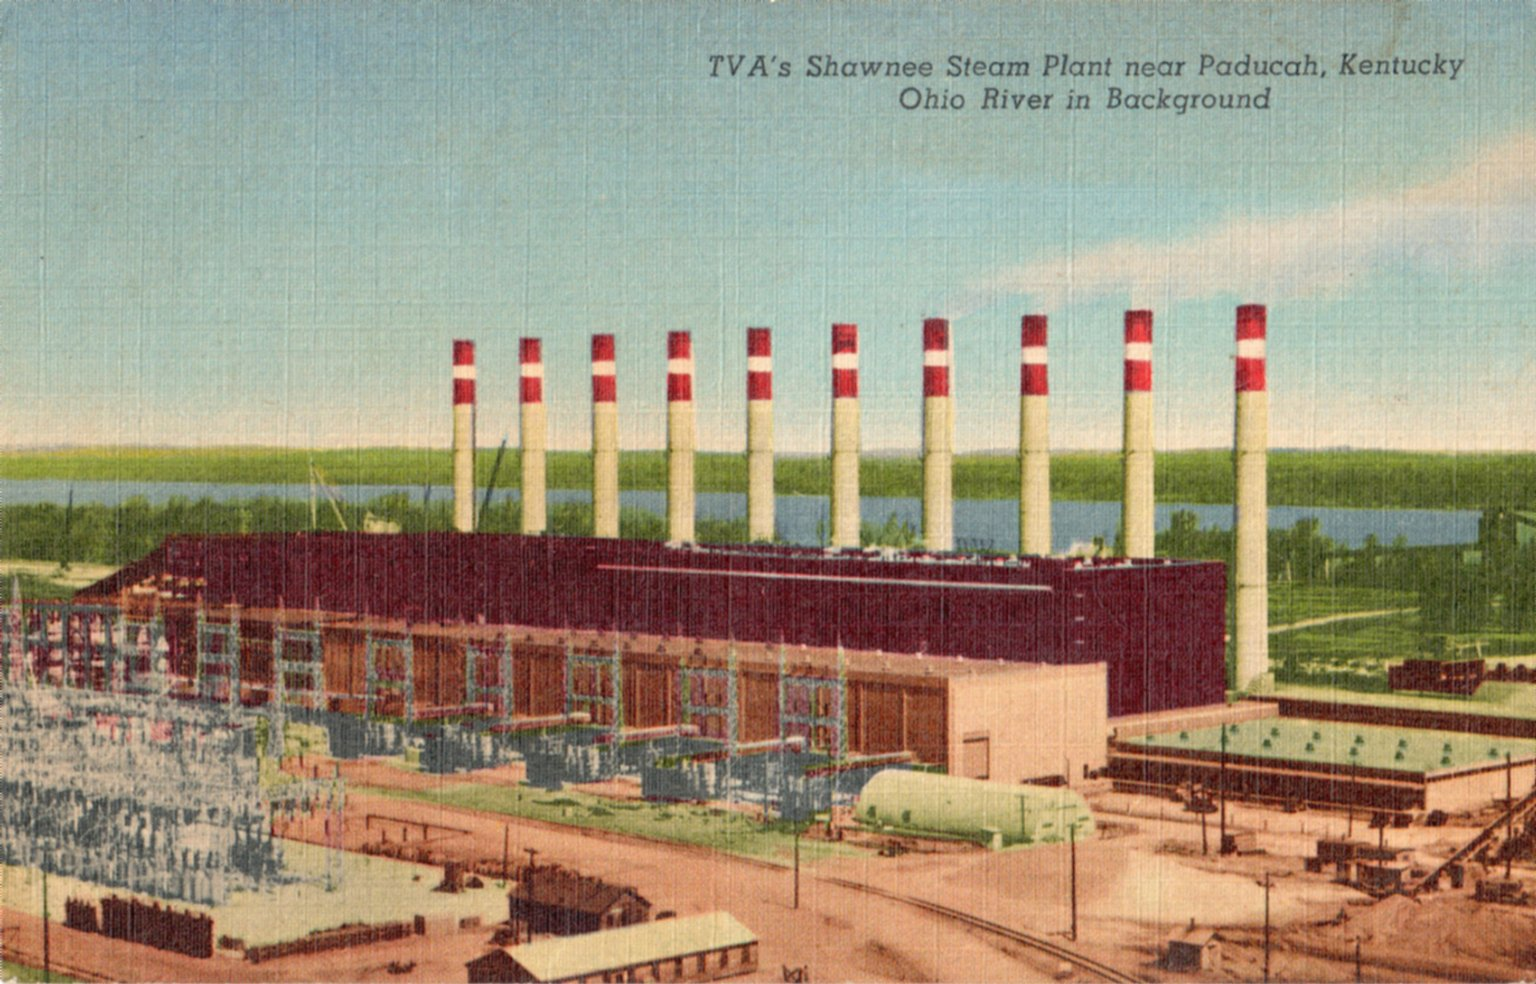 TVA's Shawnee Steam Plant near Paducah, Kentucky Ohio River in Background